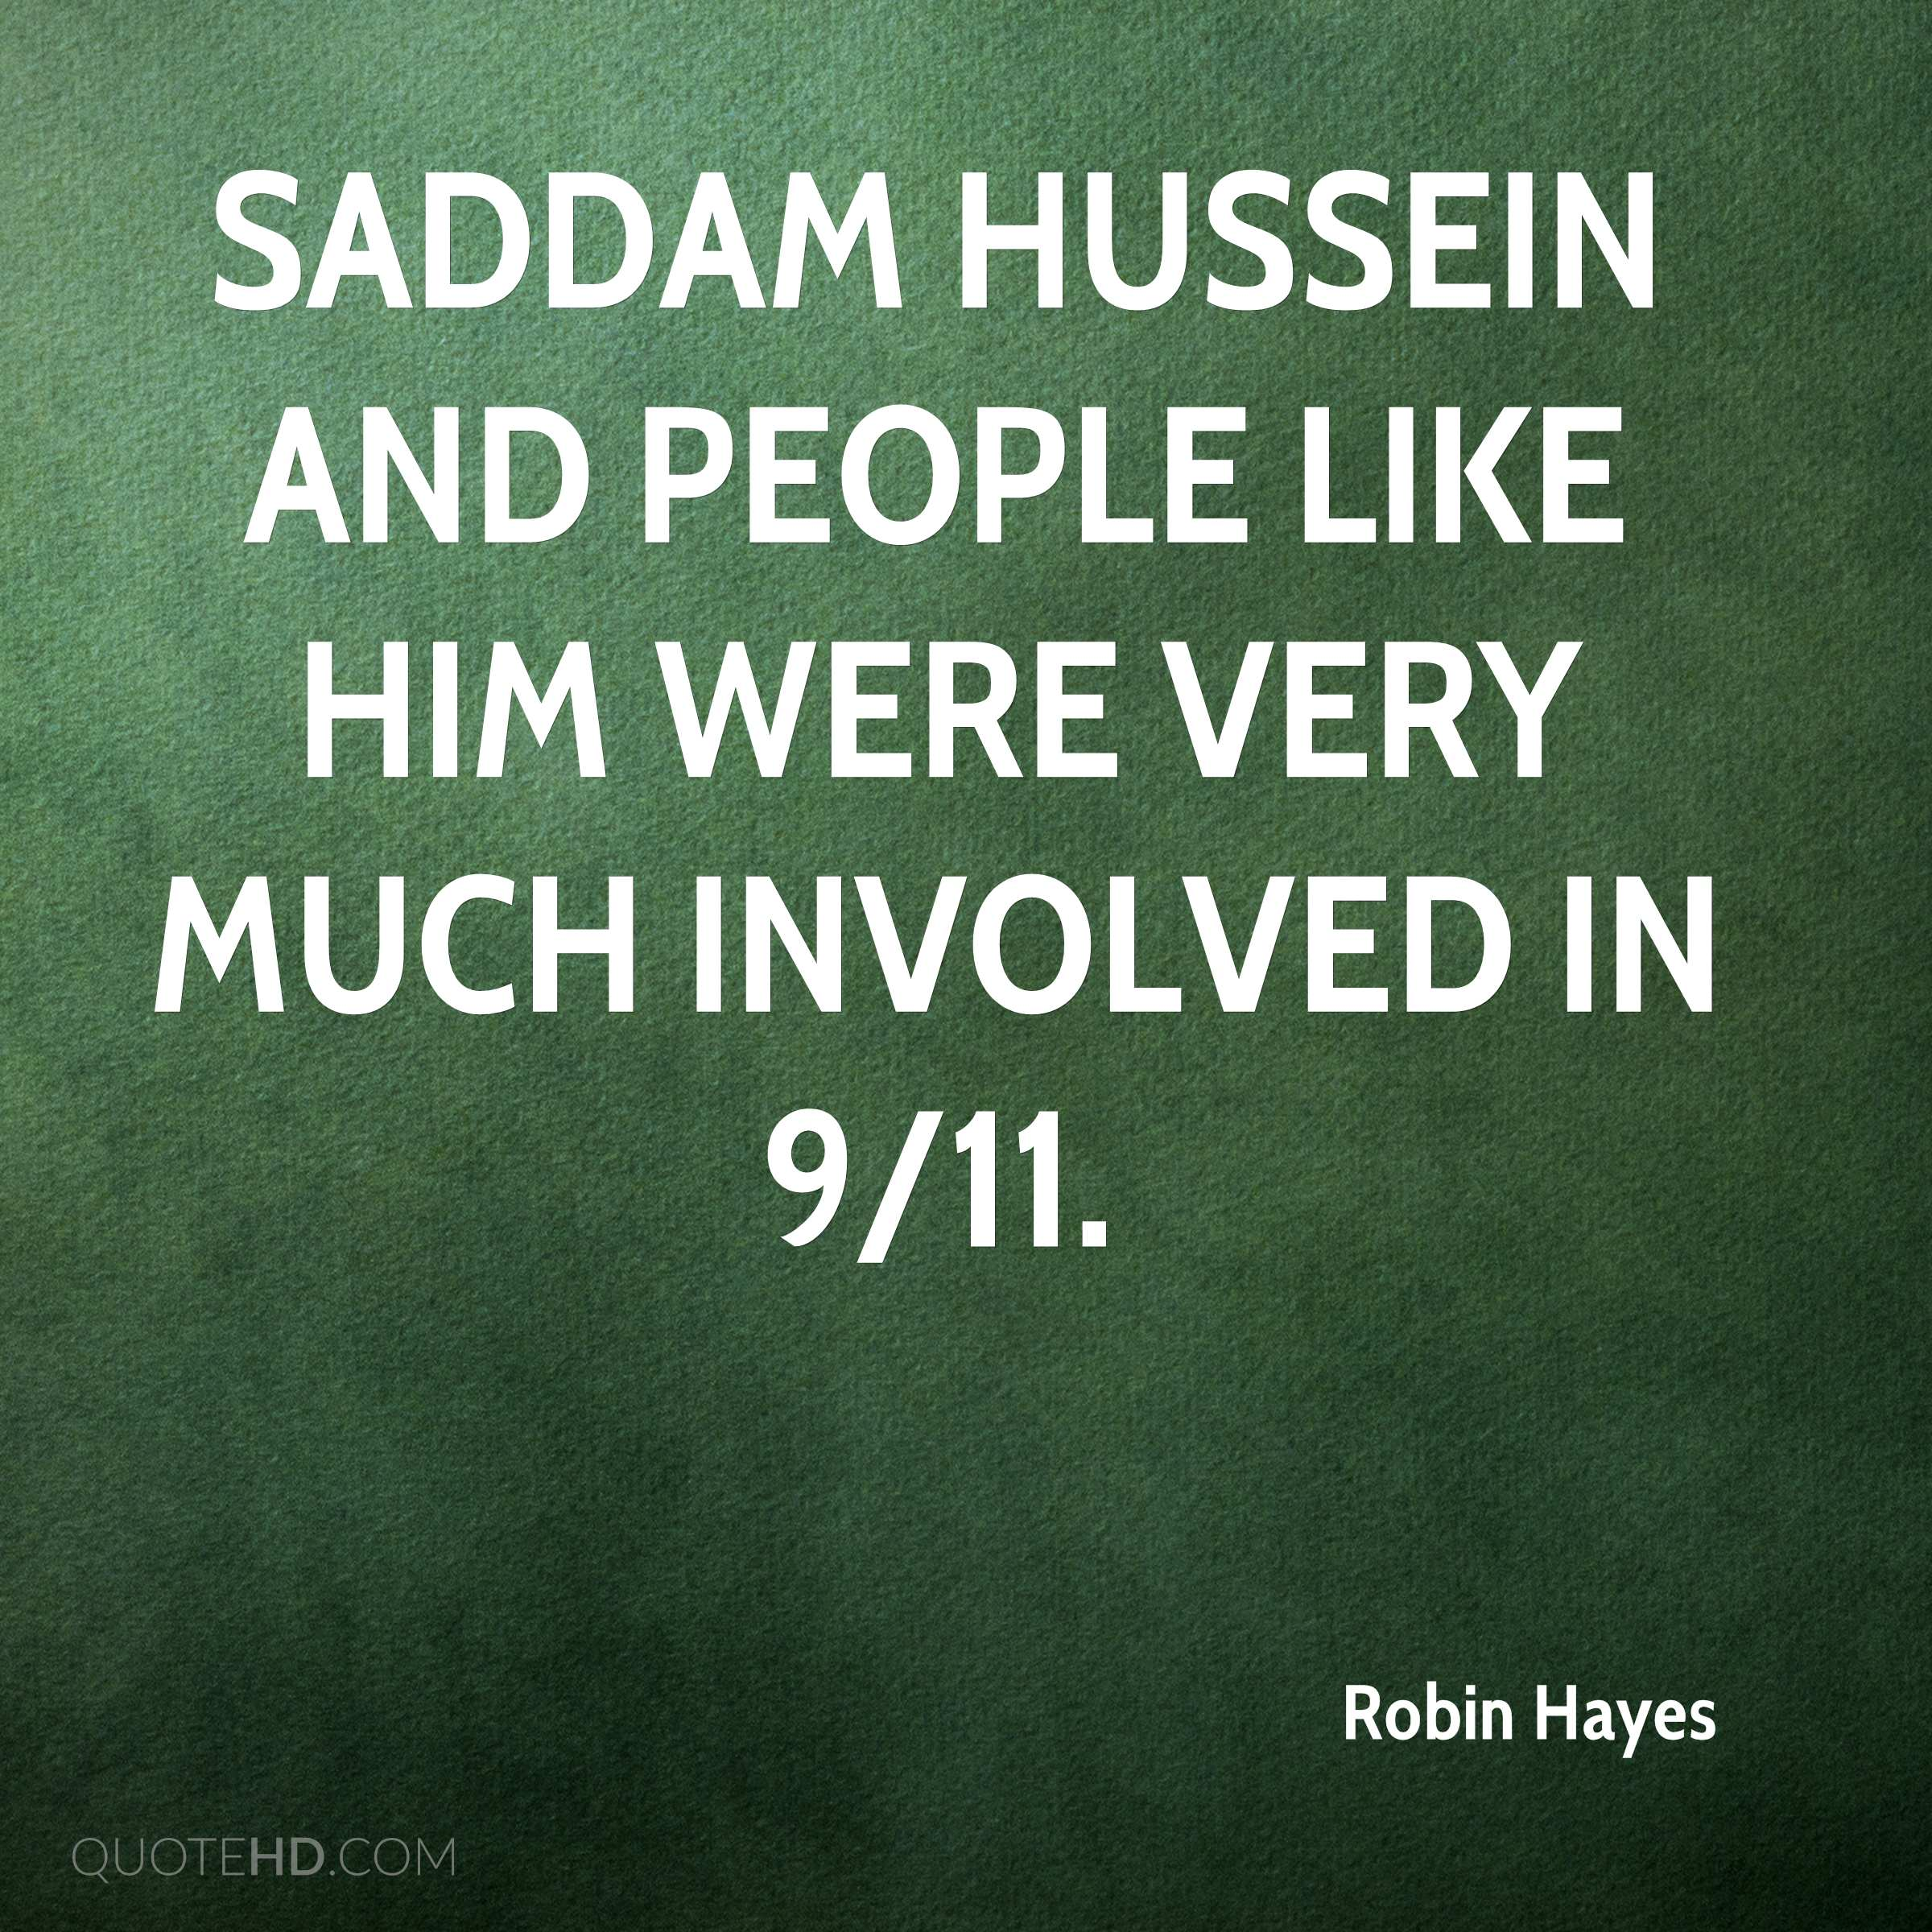 Saddam Hussein and people like him were very much involved in 9/11.